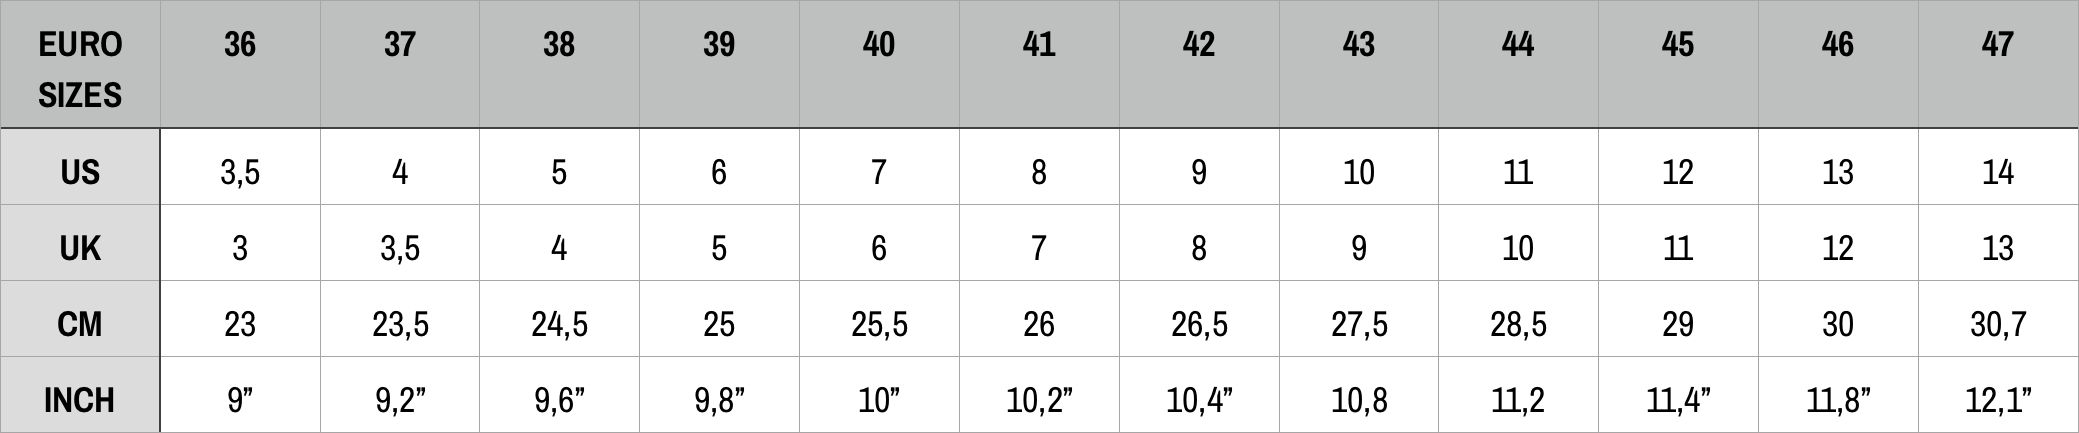 sizes_36-47.png